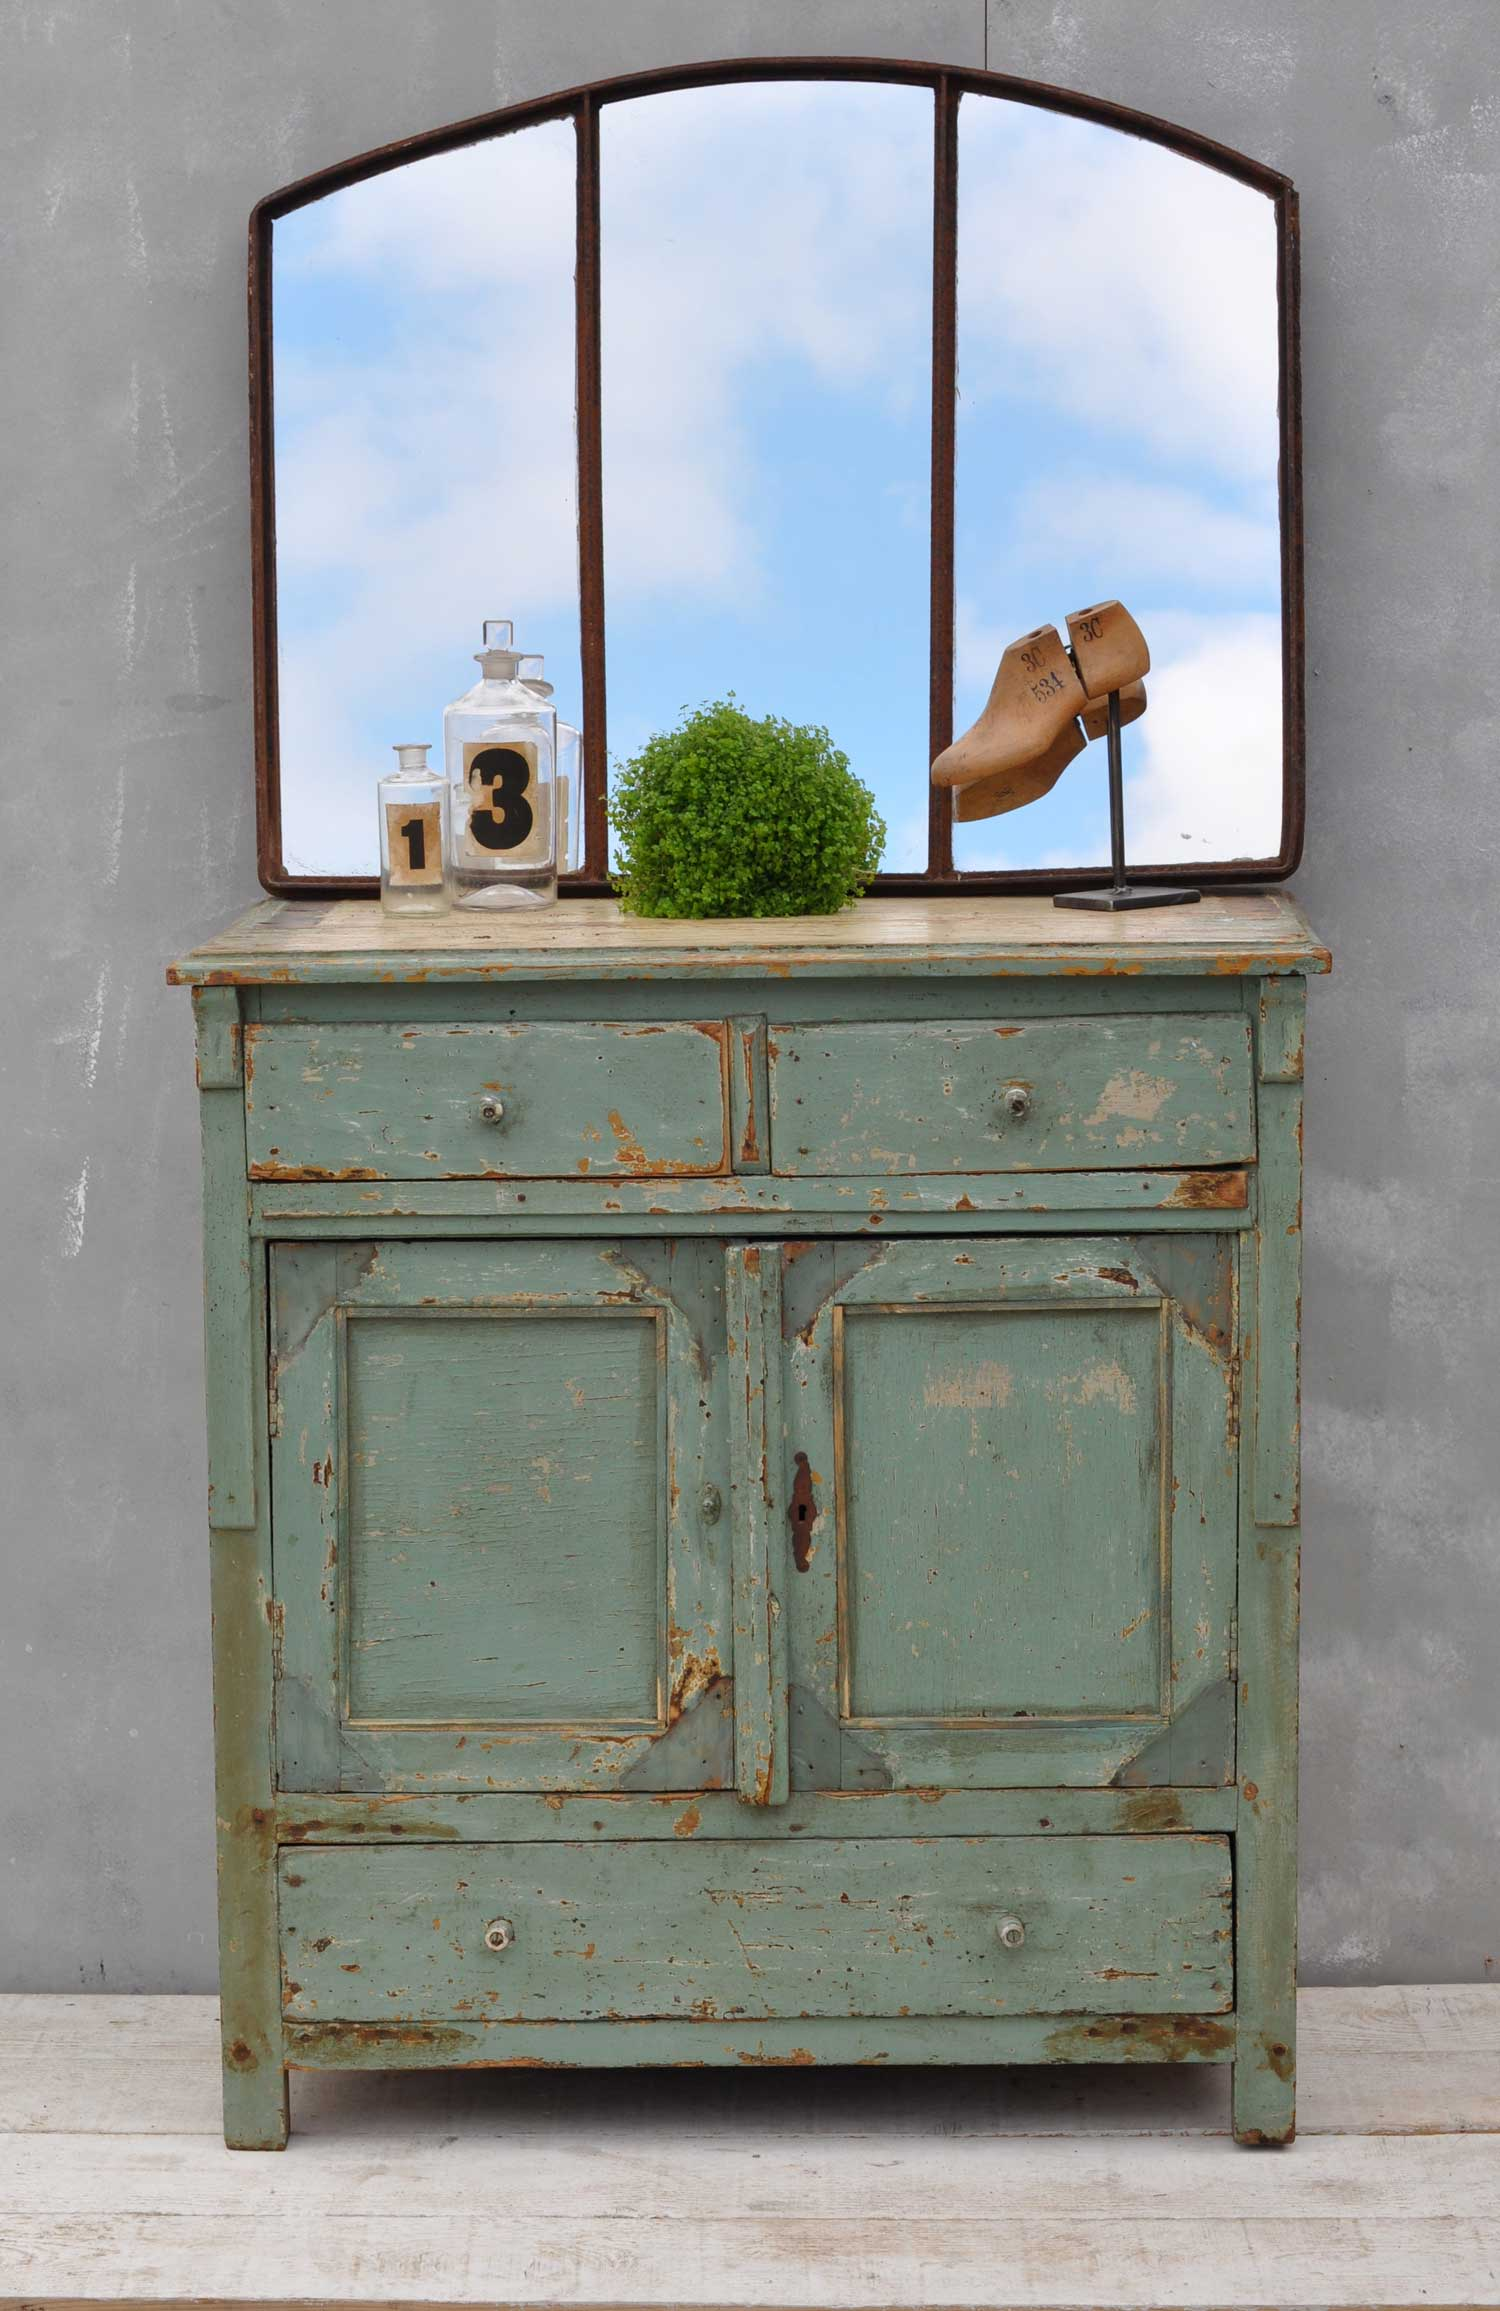 Vintage French Cupboard - Aquamarine Green Cabinet - Original Paintwork